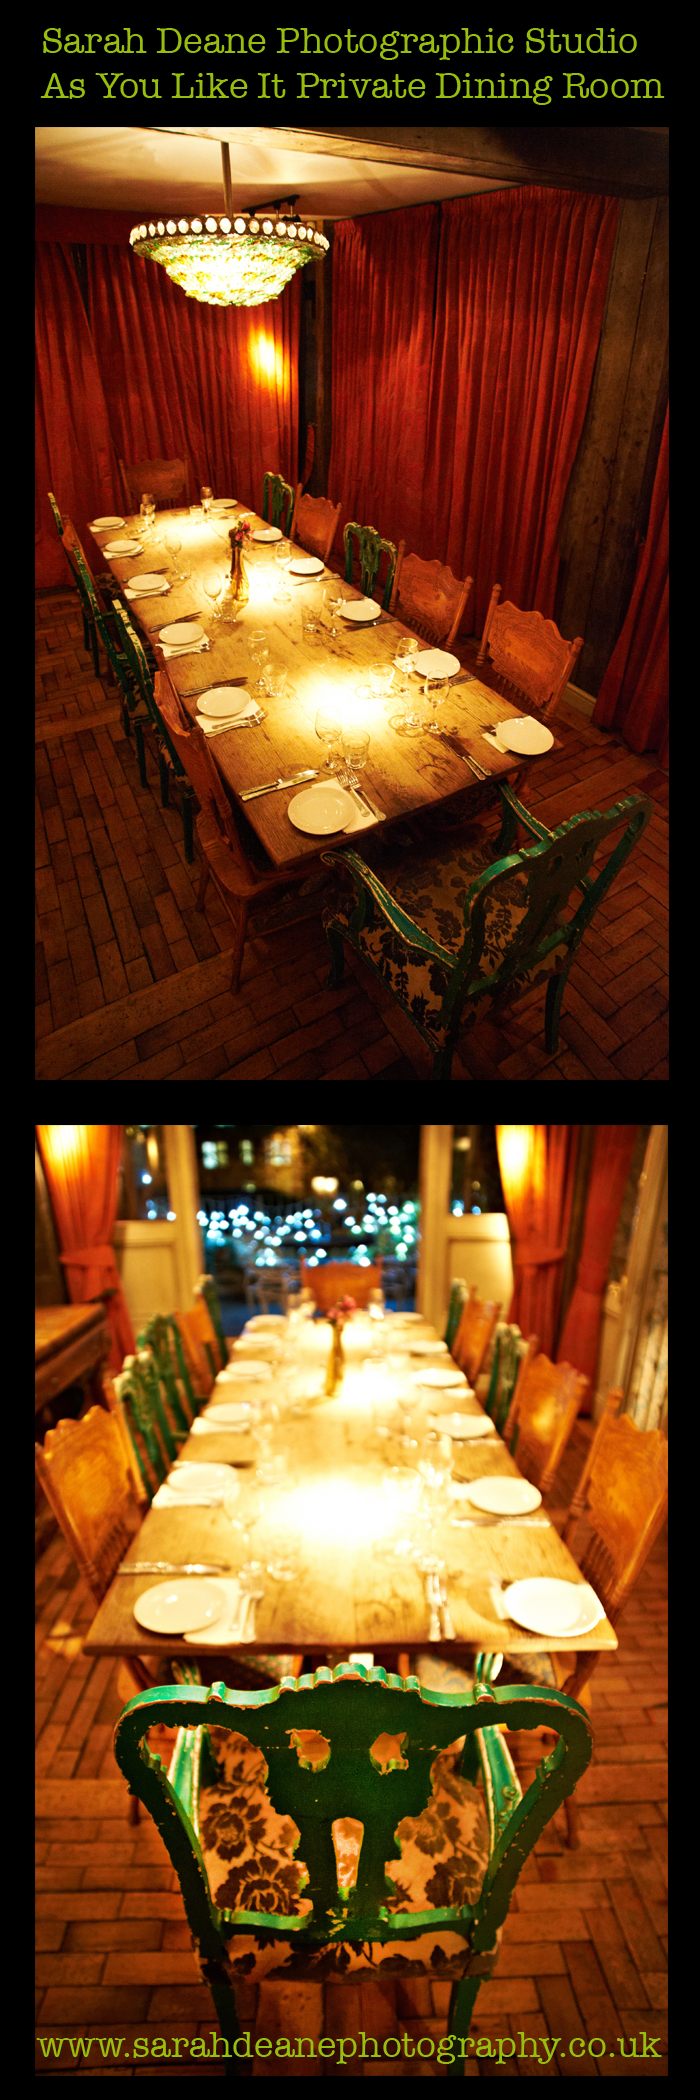 AS YOU LIKE IT JESMOND PRIVATE DINING ROOM